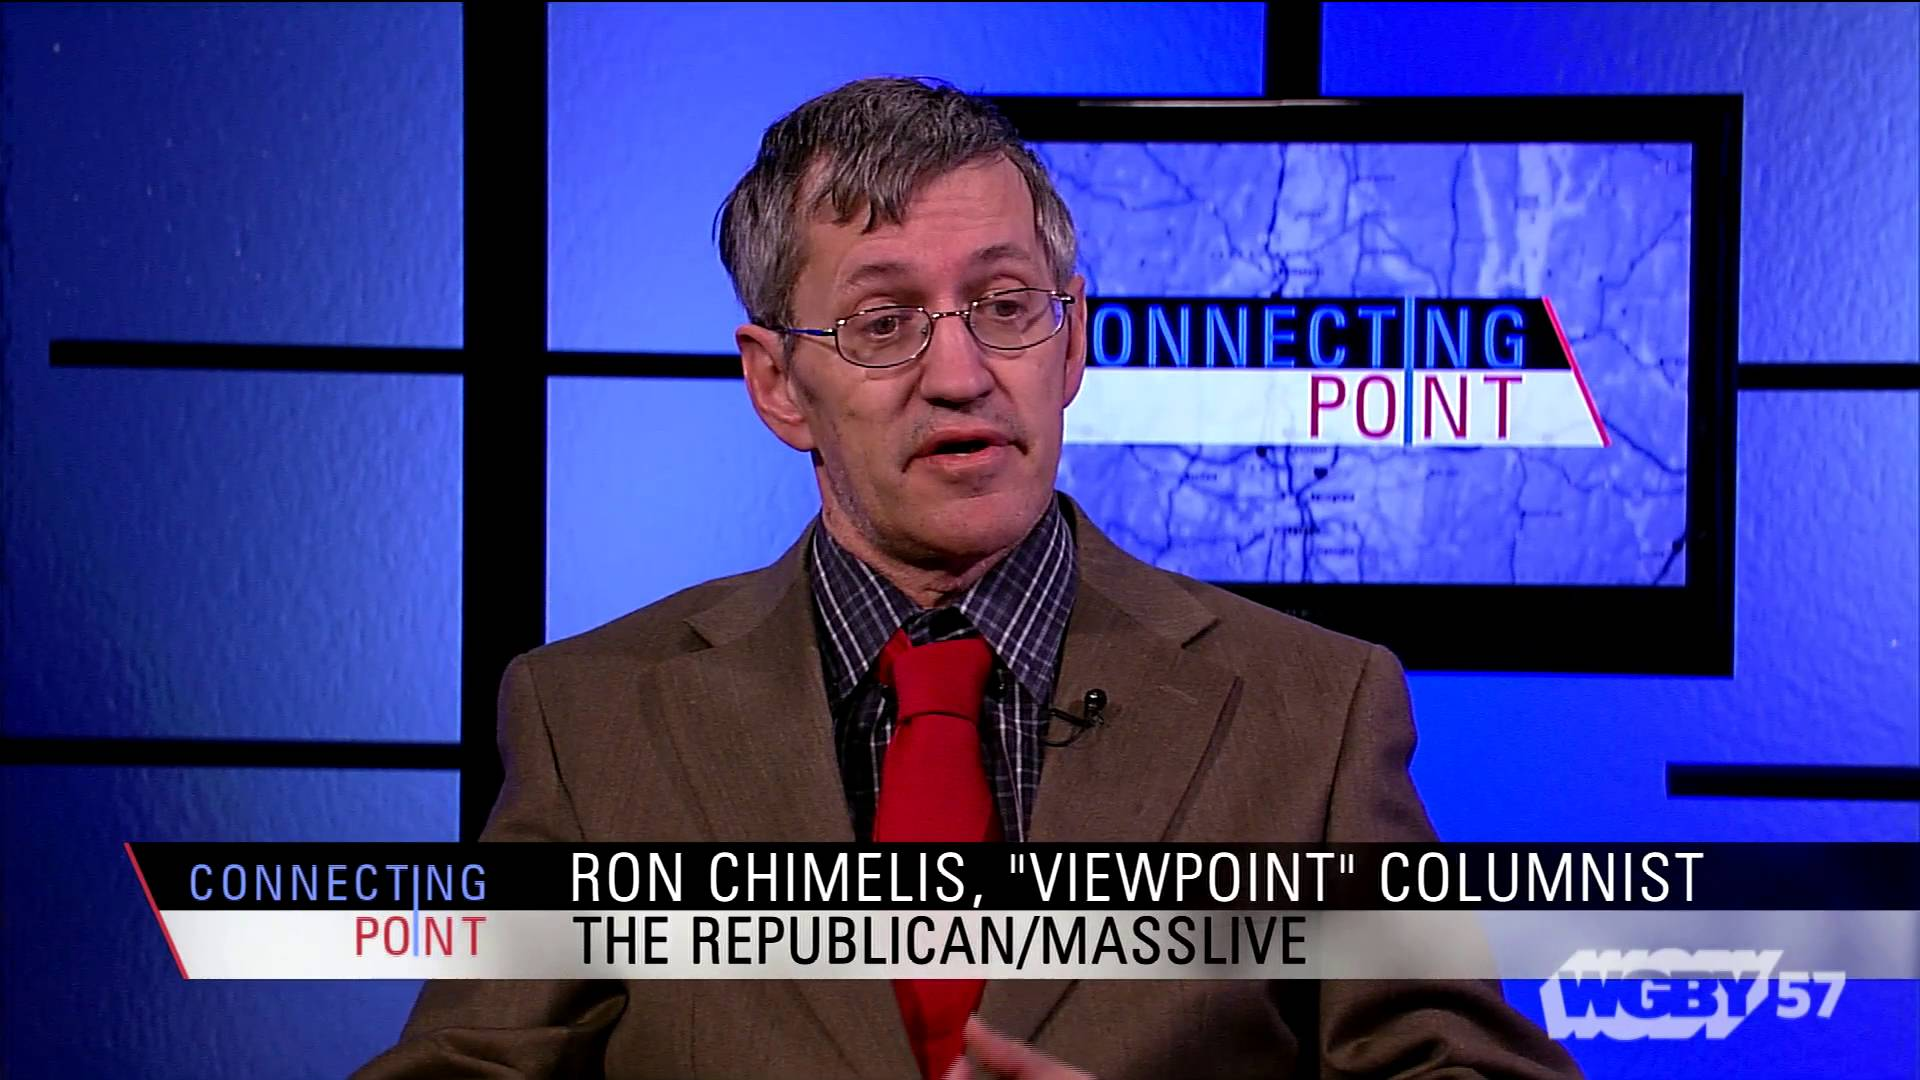 Republican/Masslive columnist Ron Chimelis gives his views on election 2016, modern feminism, & gender equality in the military.